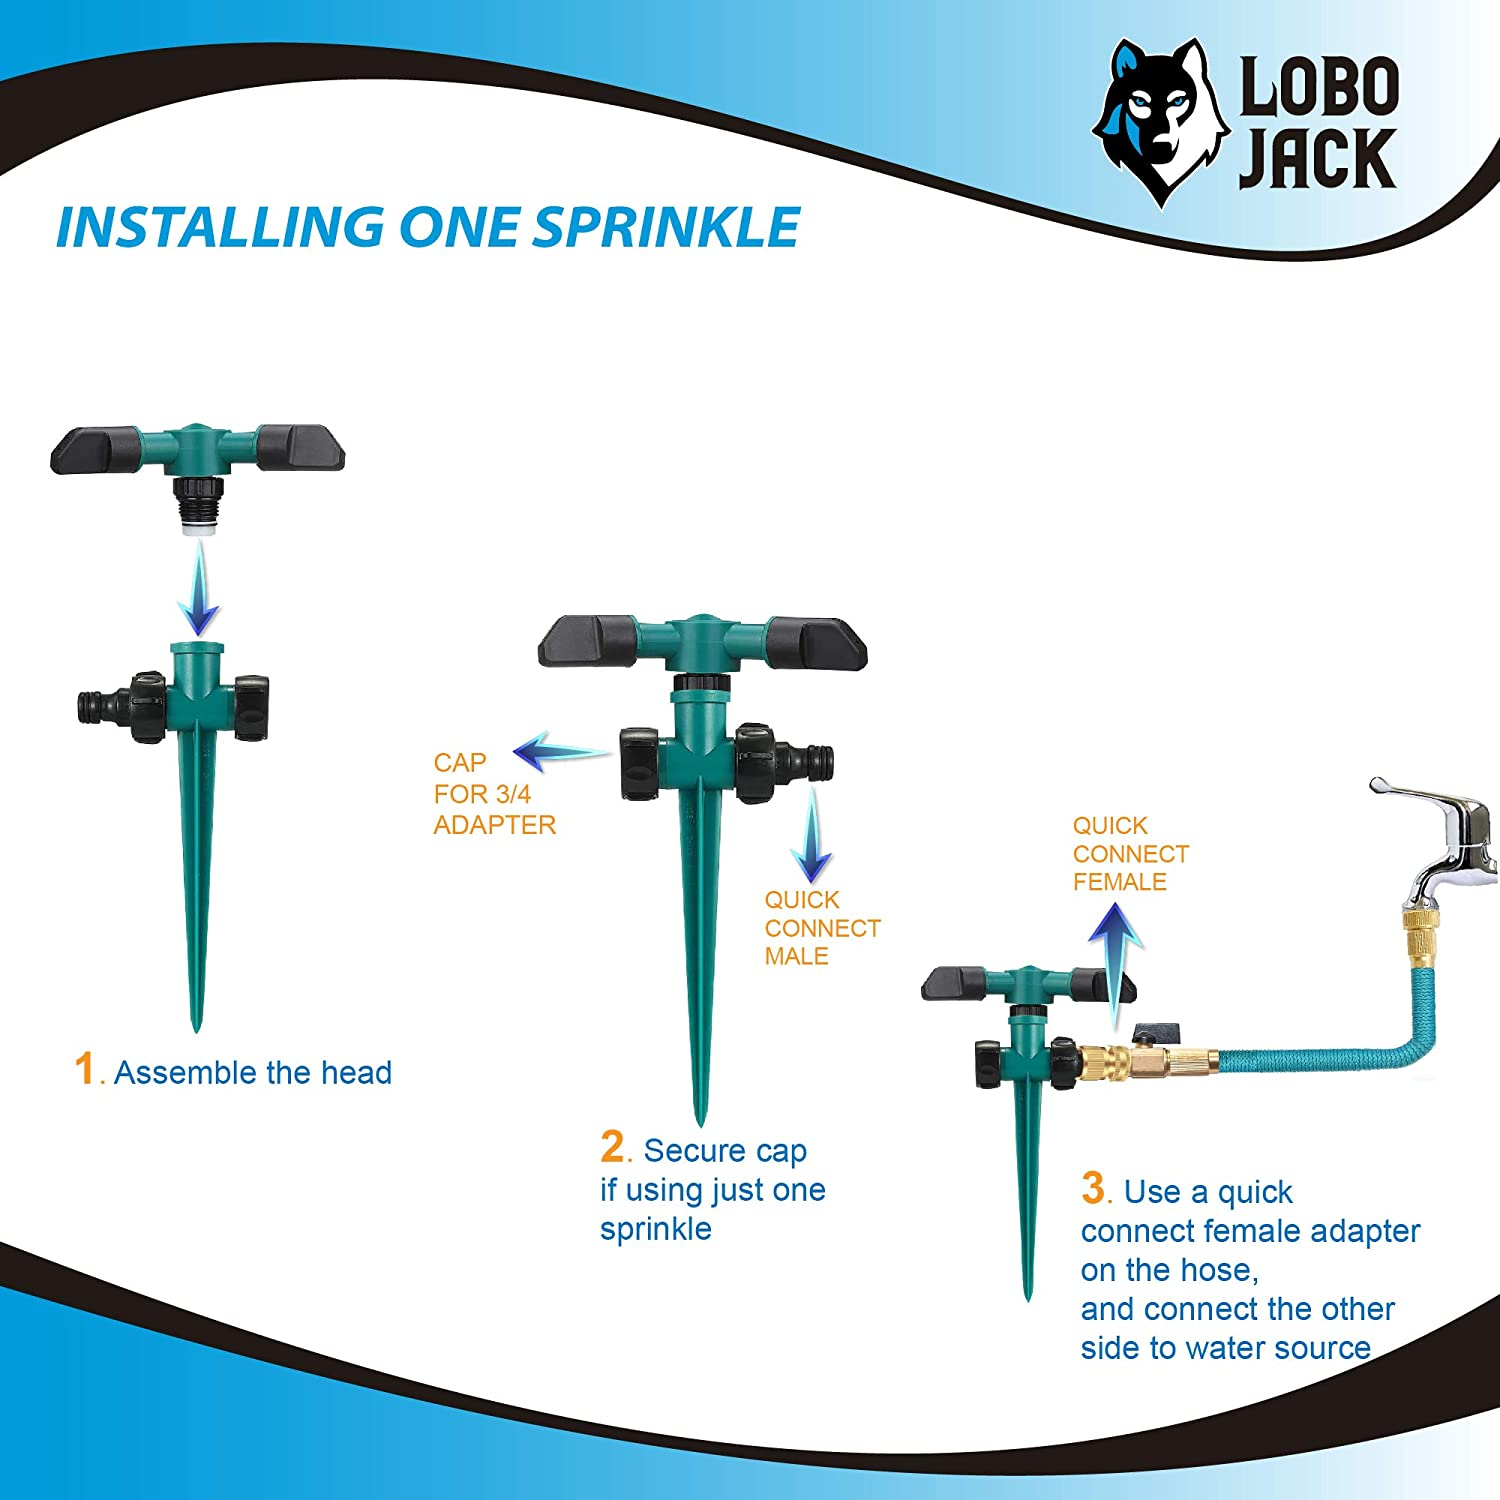 LoboJack 3 Arms Sprinkler for Lawn Garden Watering, 360 Degree Automatically Rotating, Up to 32 ft. of Irrigation : Garden & Outdoor